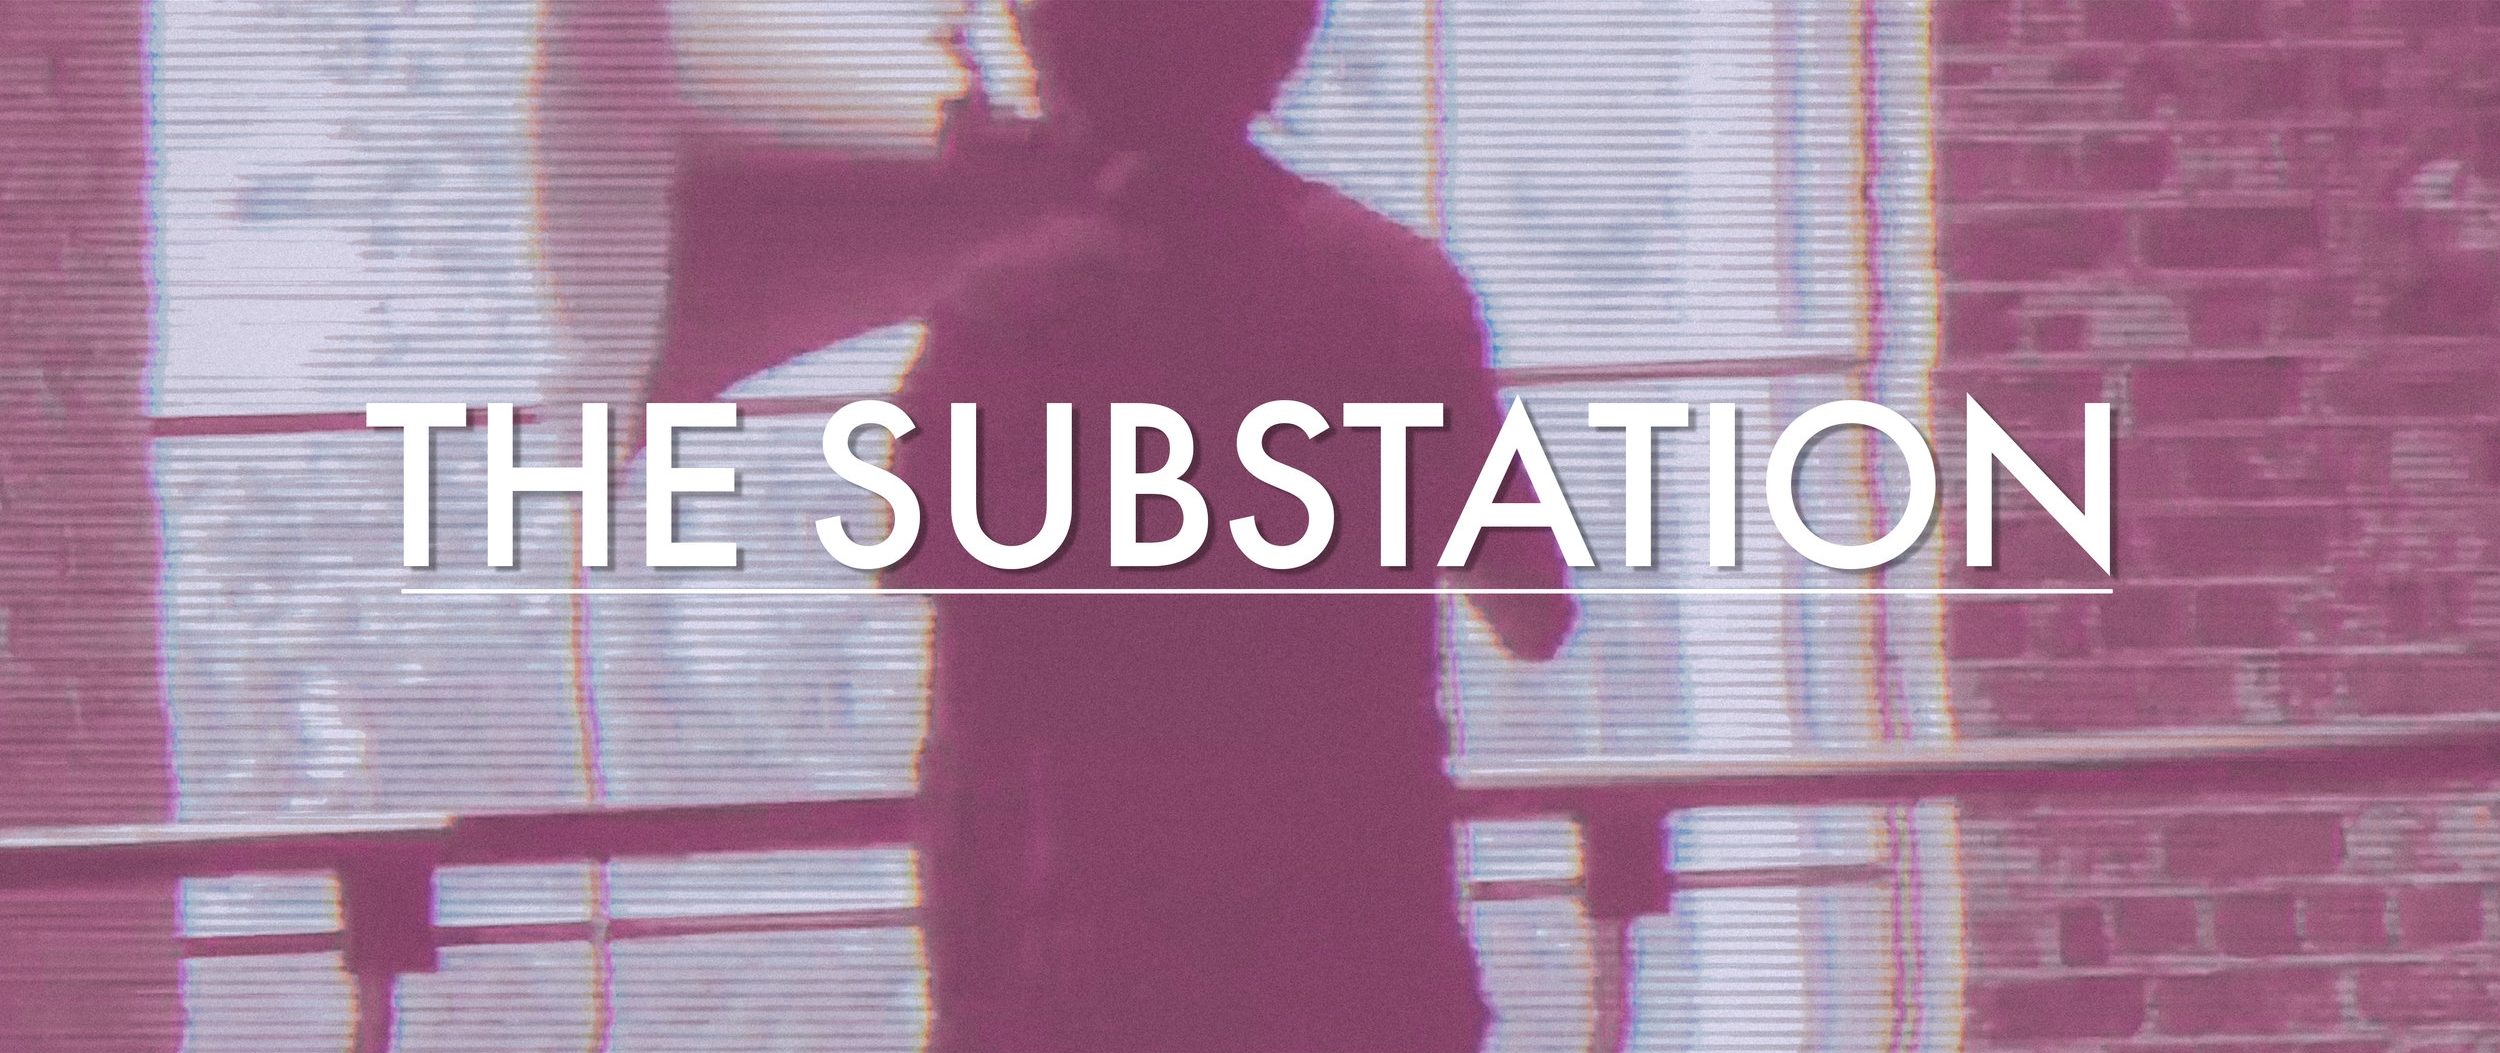 the-substation-intro.jpg